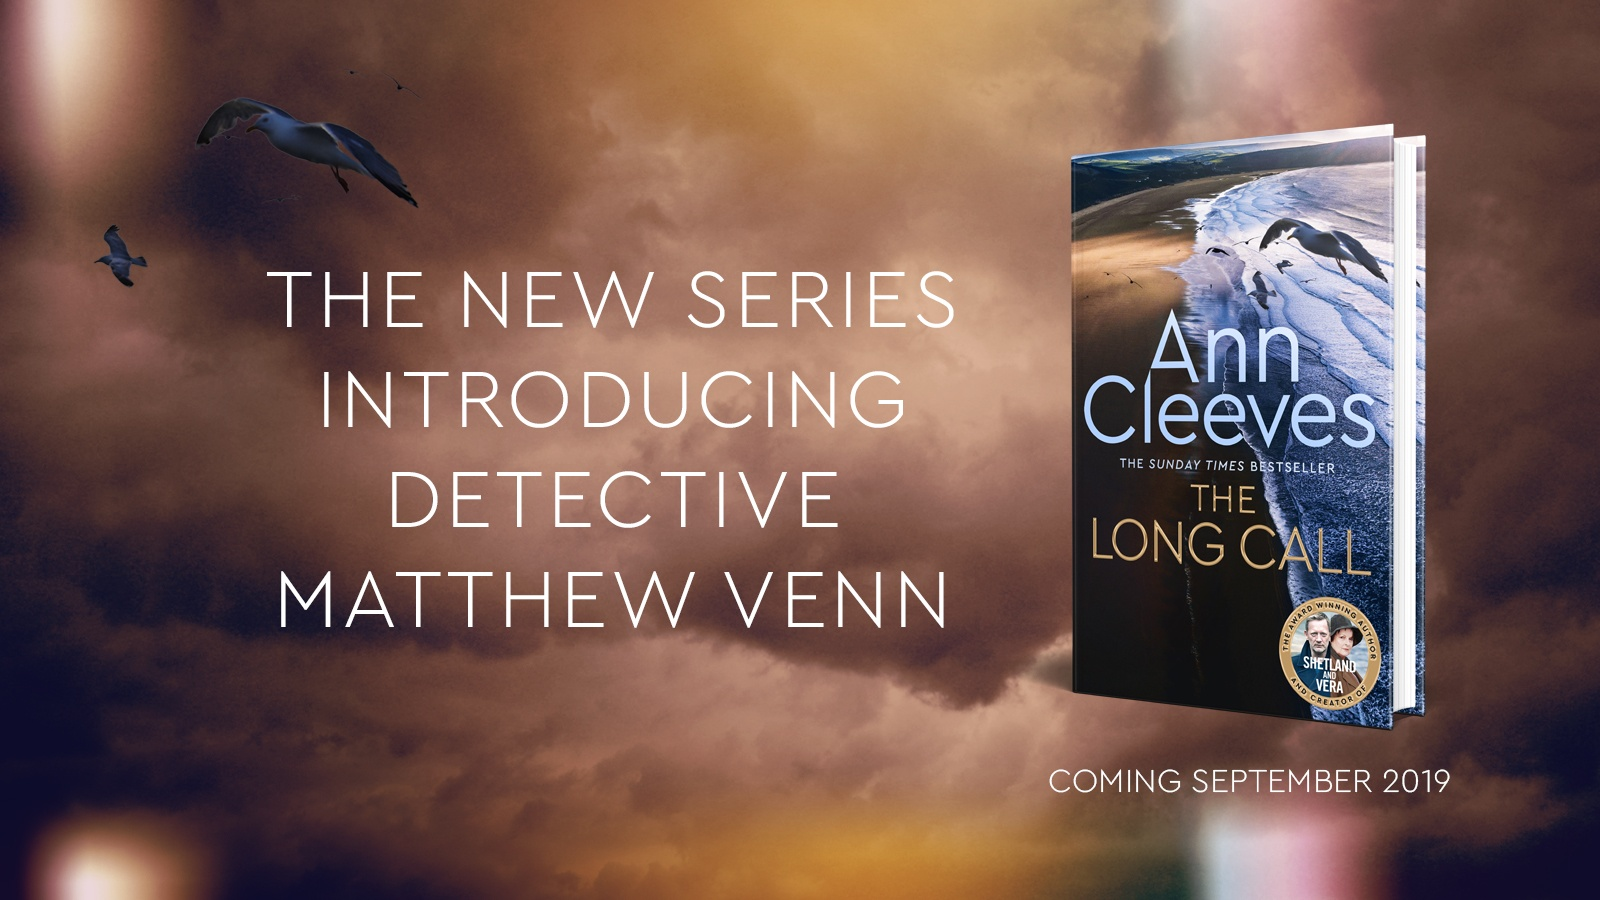 Read an extract from Ann Cleeves' The Long Call